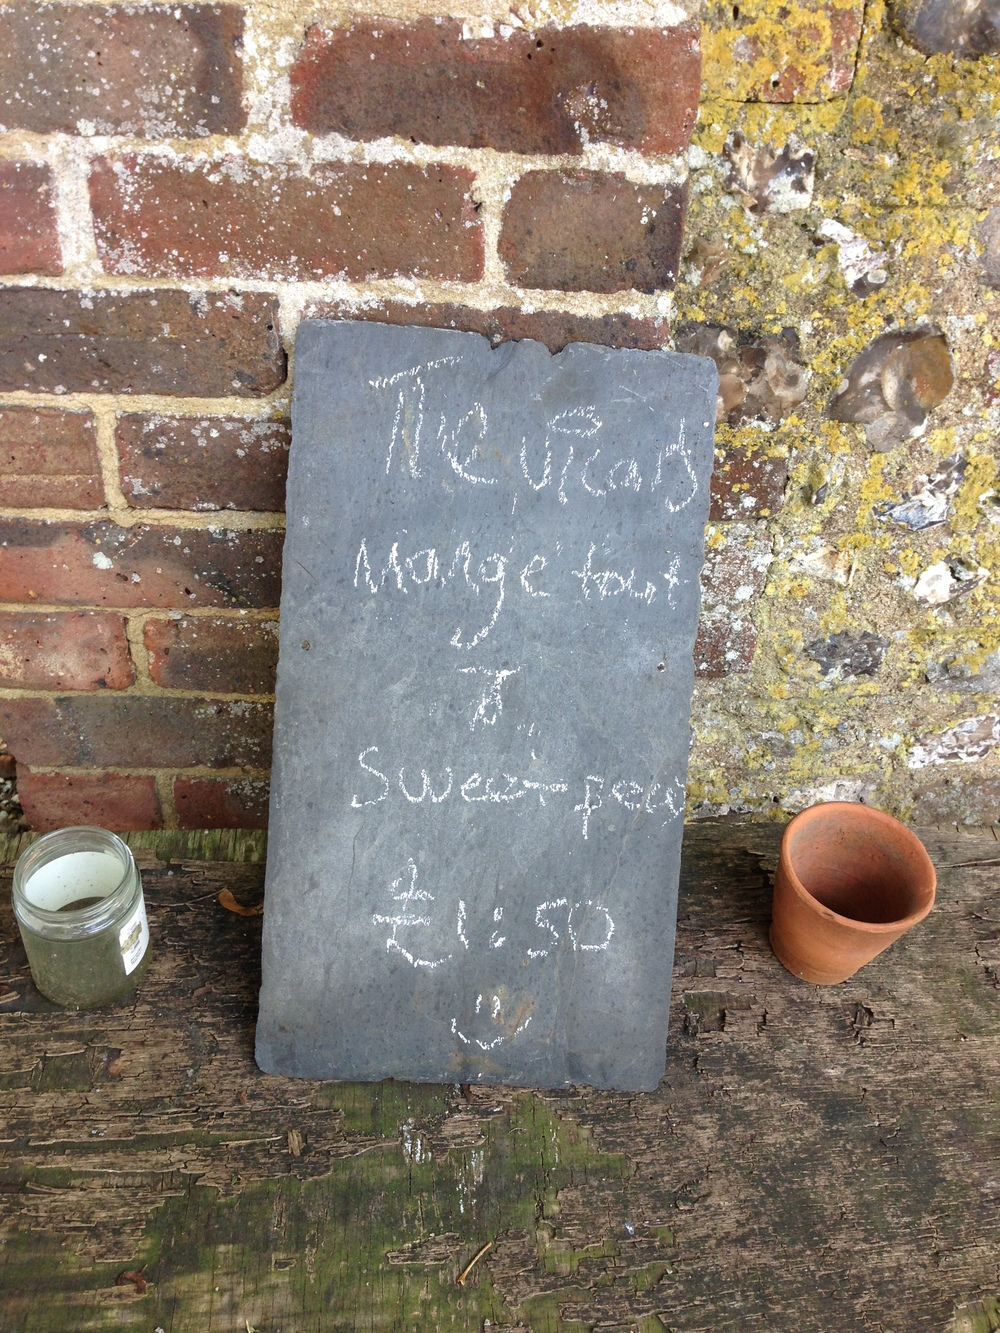 We were disappointed that the vicar's mangetout and sweet peas had all been sold!